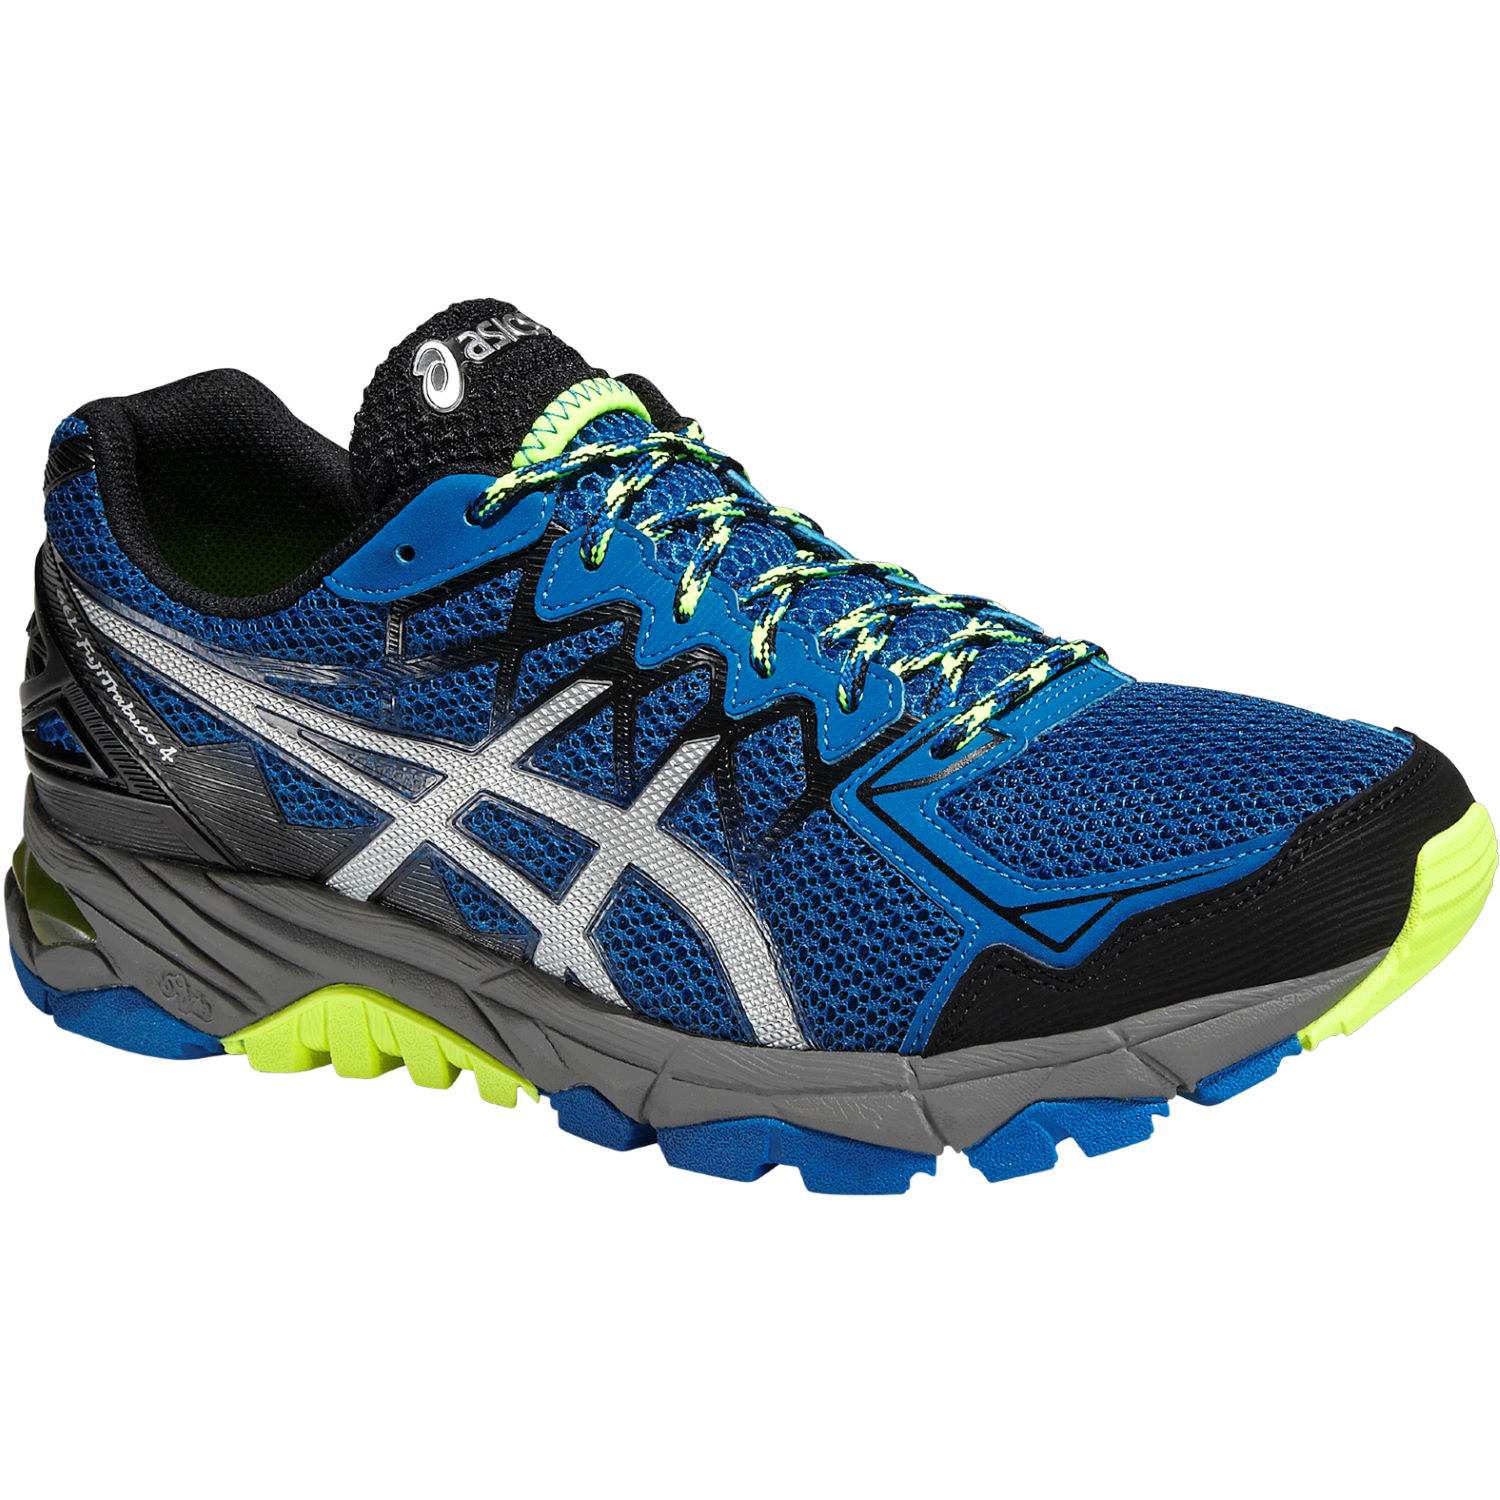 wiggle asics gel fujitrabuco 4 shoes ss16 offroad running shoes. Black Bedroom Furniture Sets. Home Design Ideas